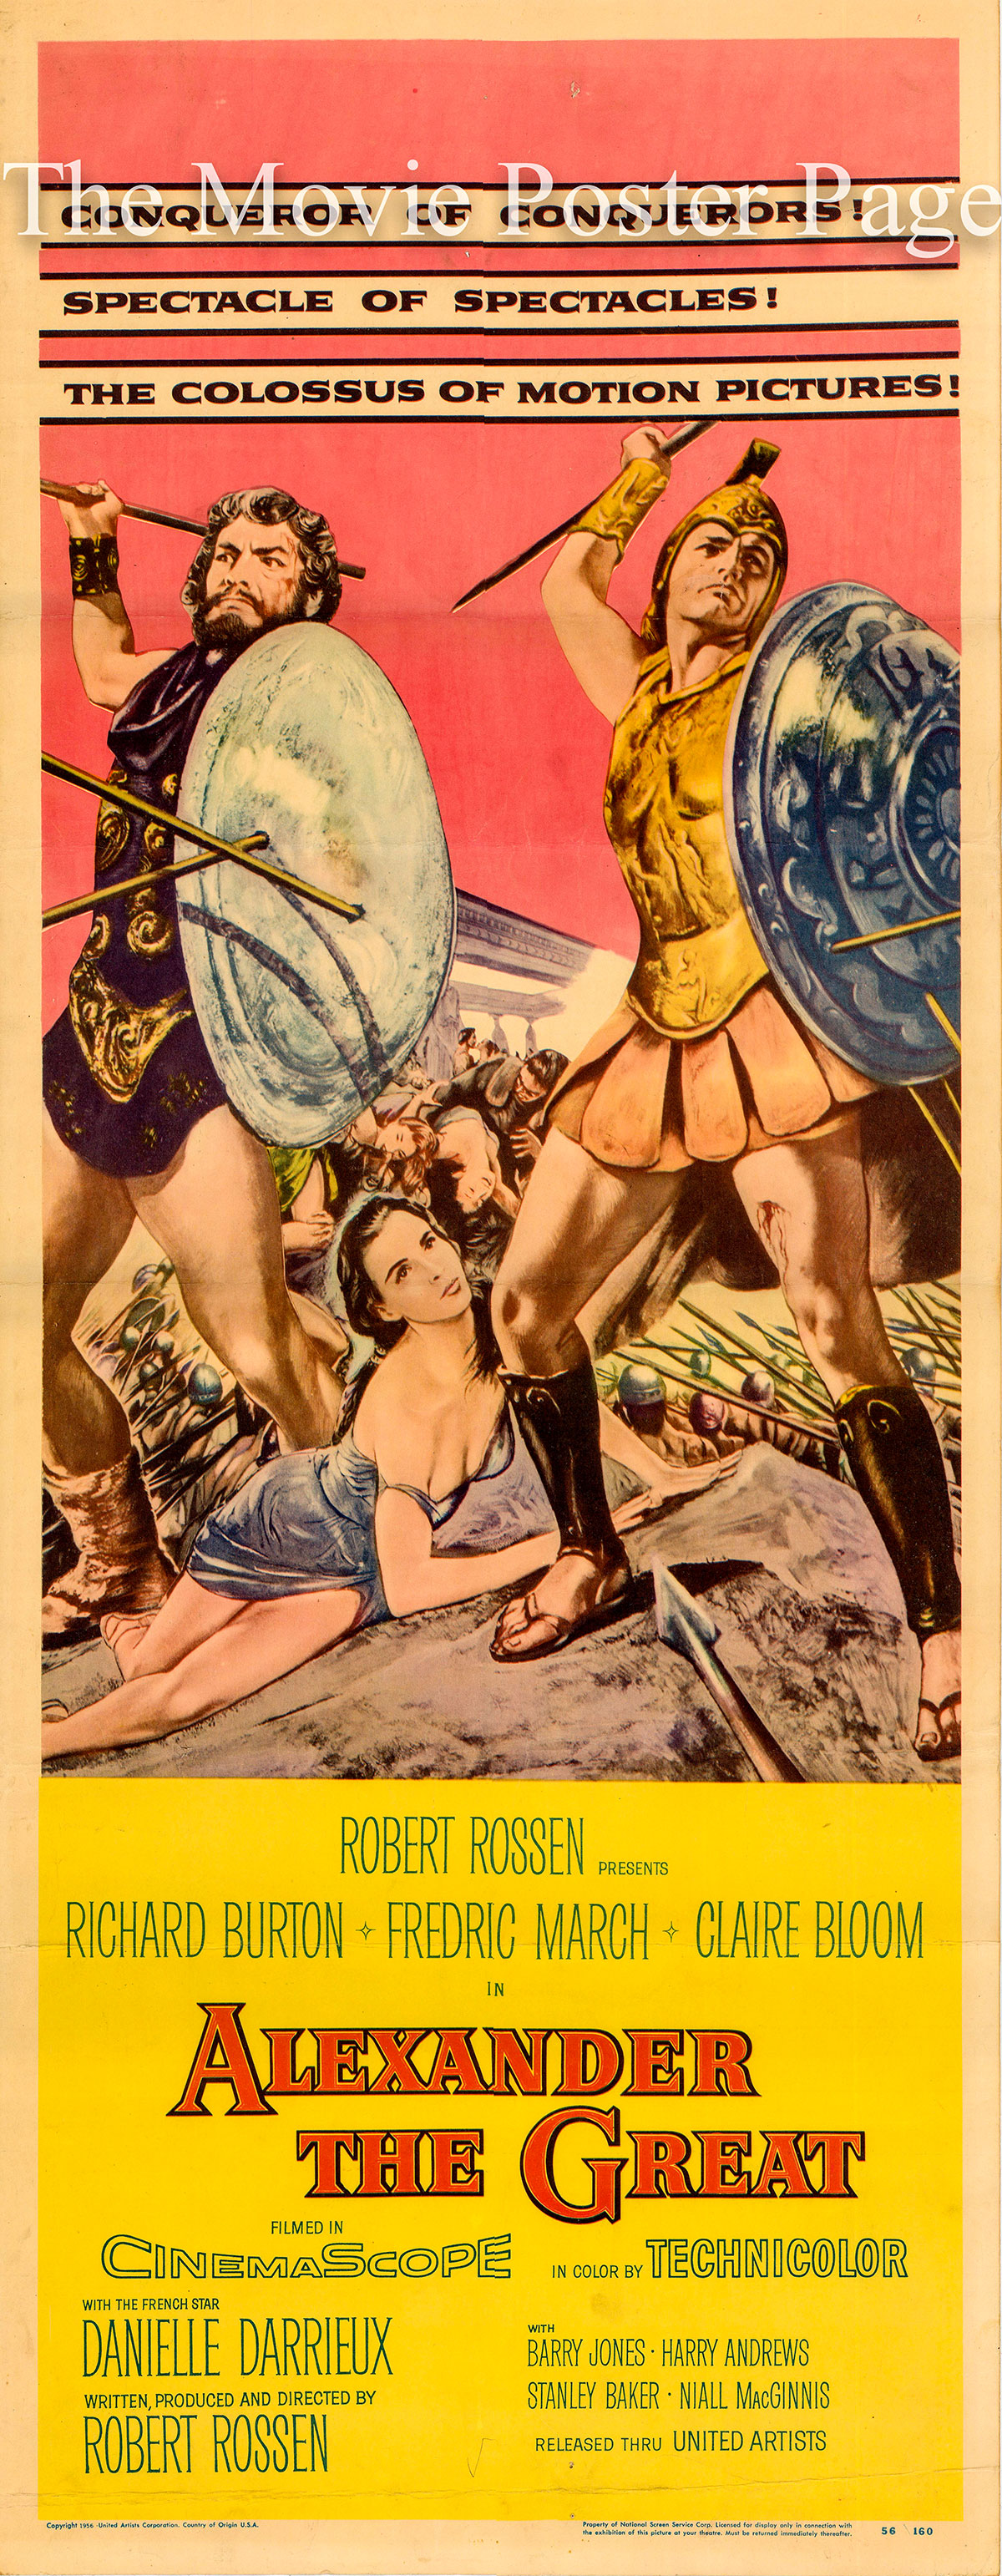 Pictured is a US one-sheet promotional poster for the 1956 Roberto Rossen film Alexander the Great starring Richard Burton.